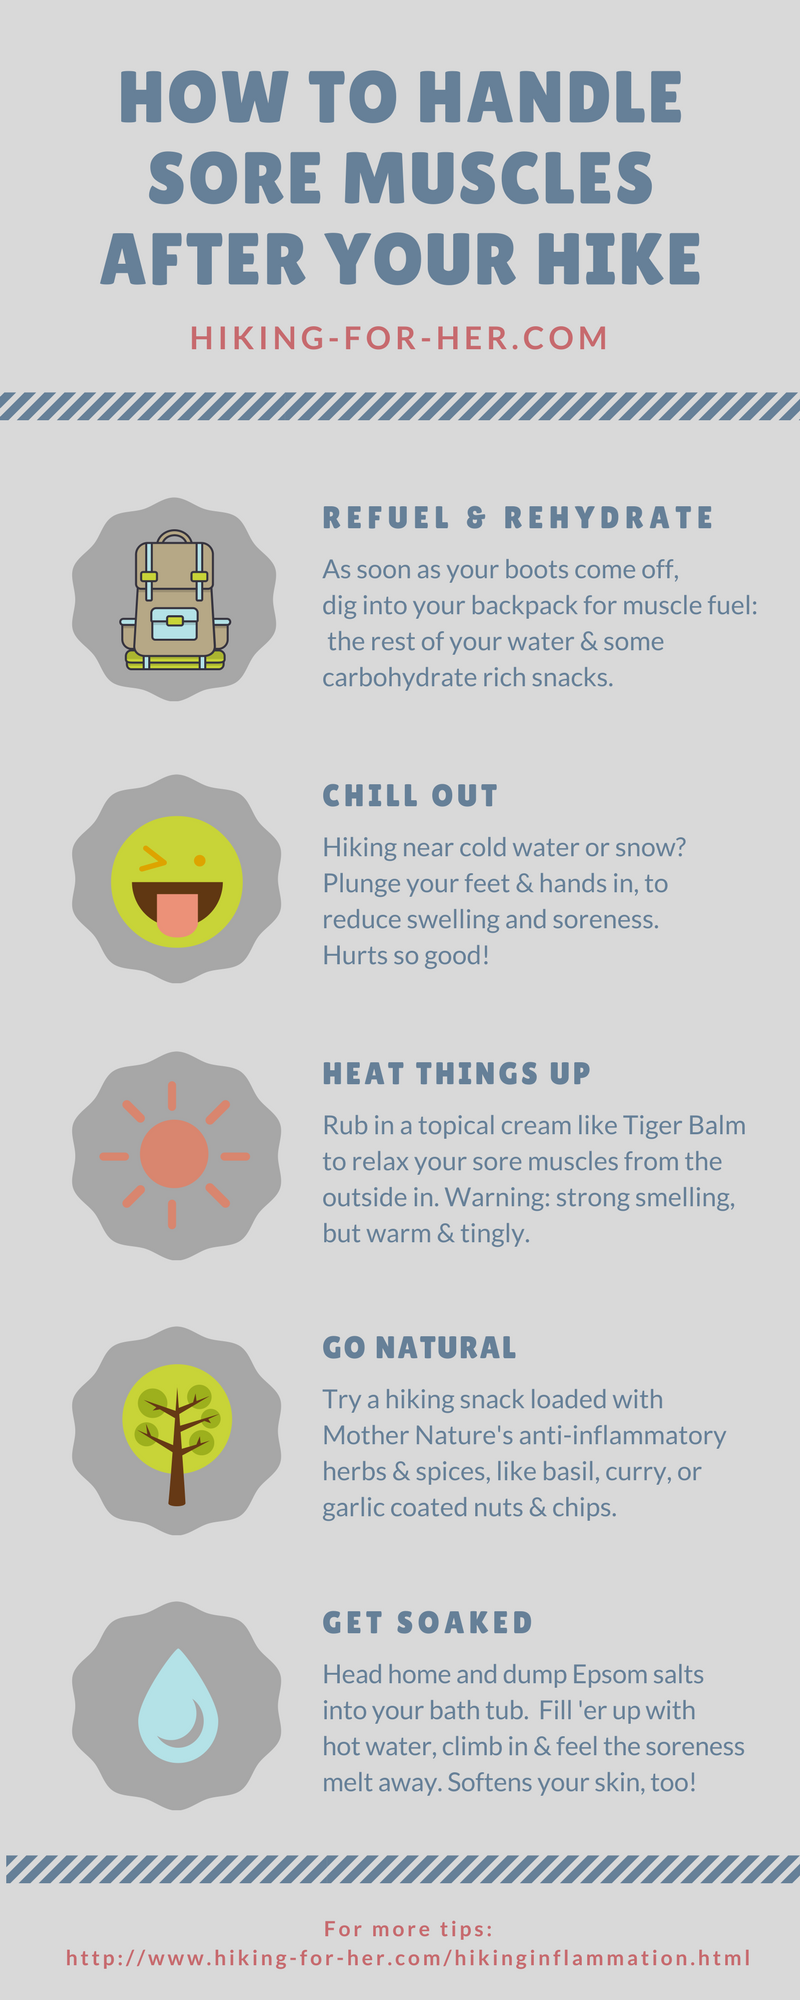 Sore muscles after hiking? Use these tips to handle muscle soreness and take good care of yourself.